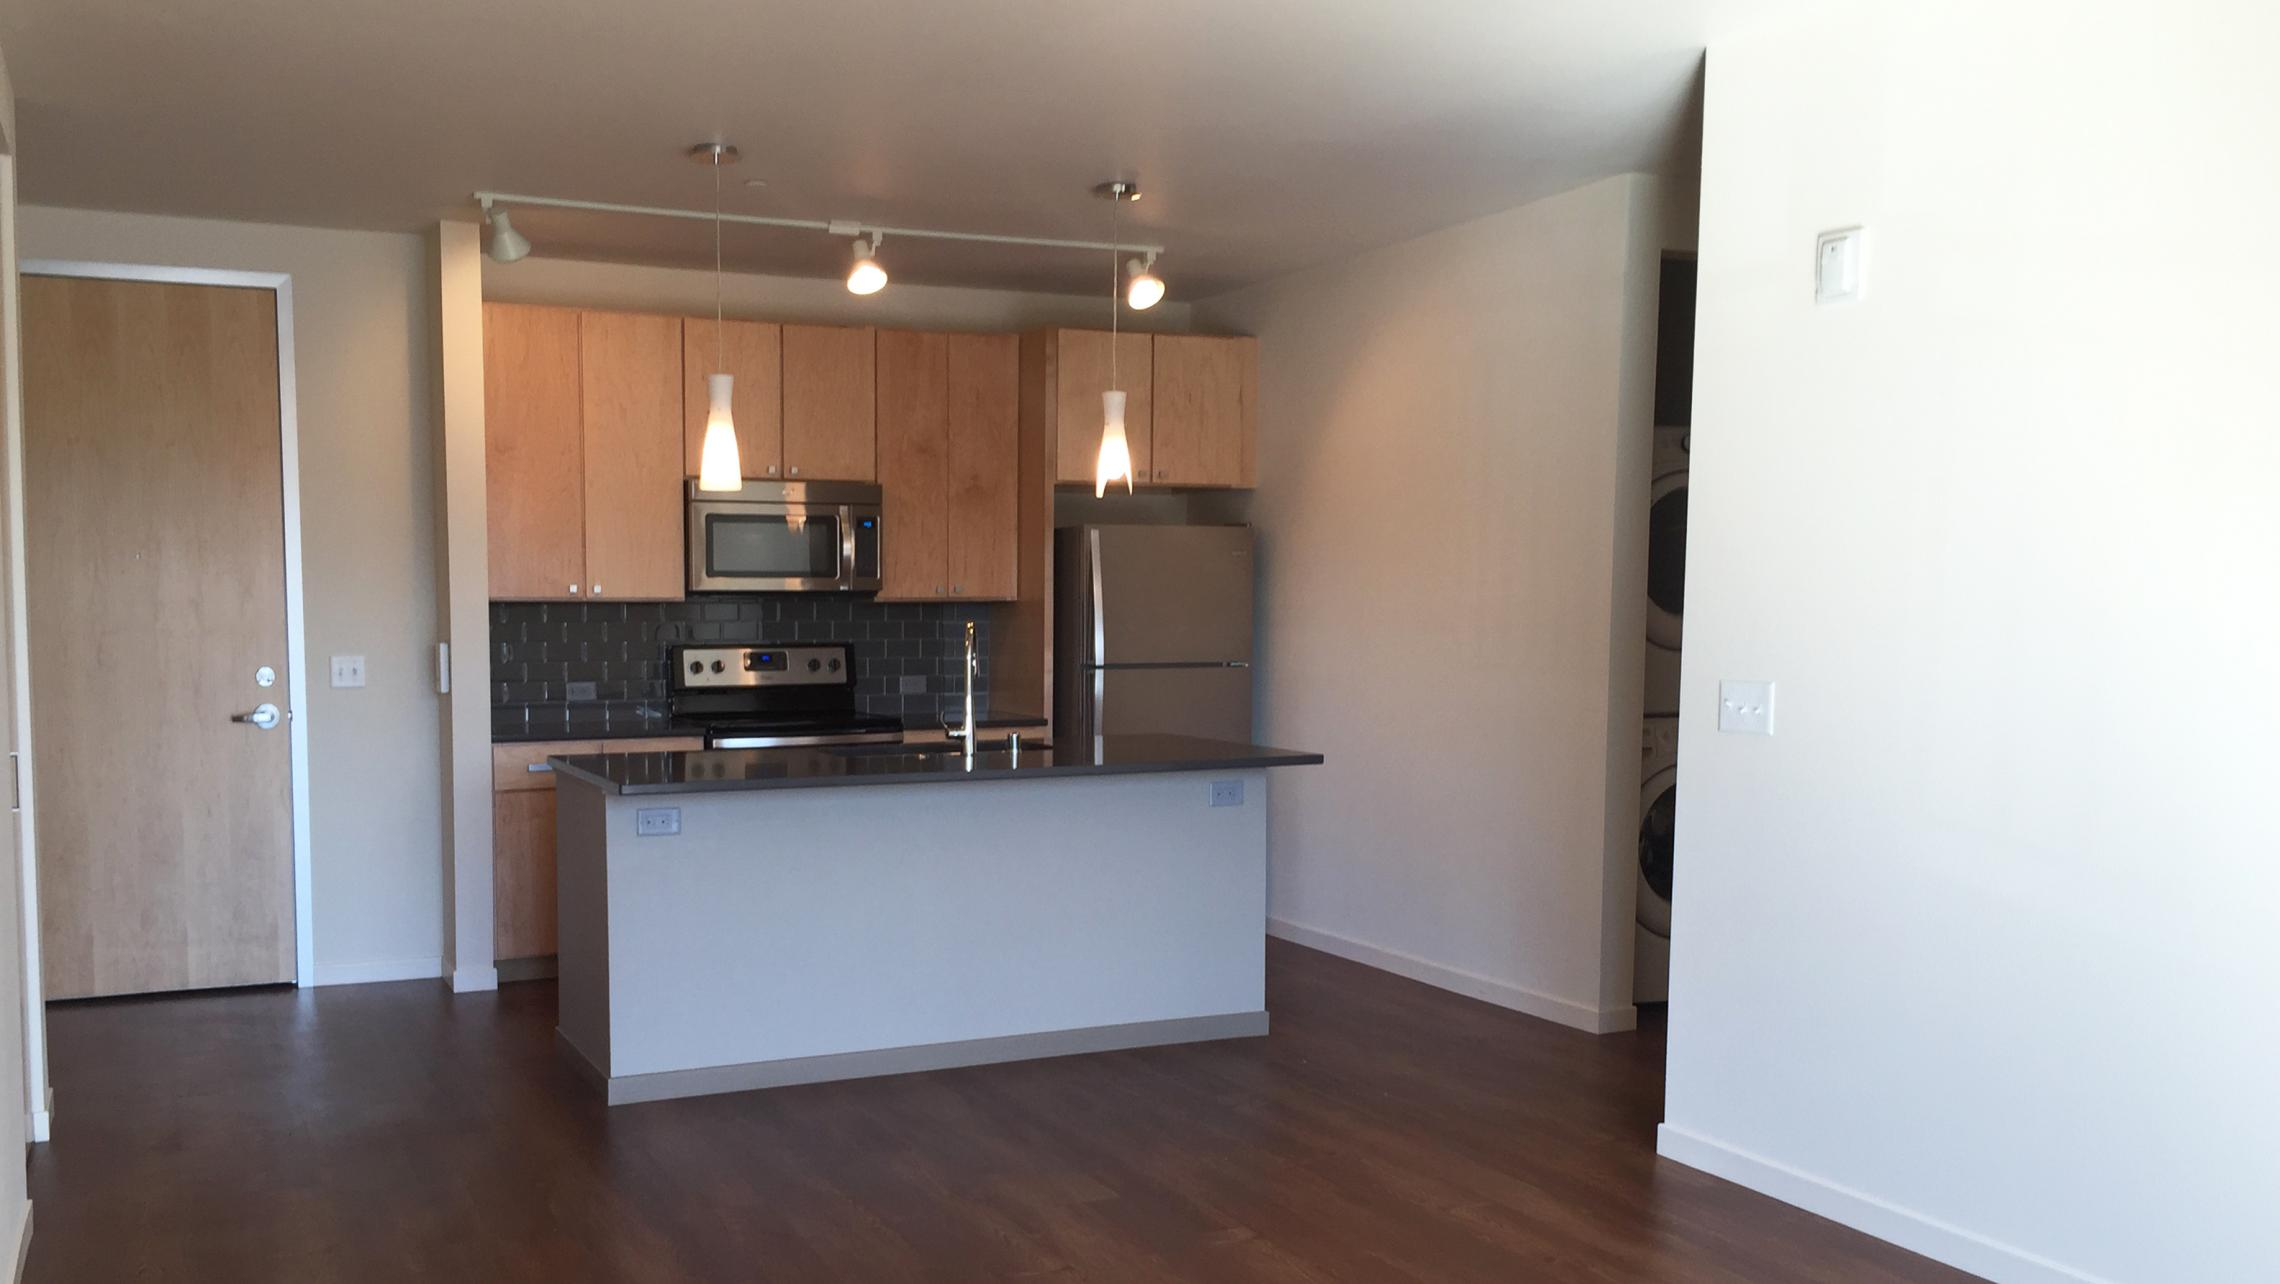 ULI Nine Line Apartment 415 - Kitchen with Stainless Steel Appliances